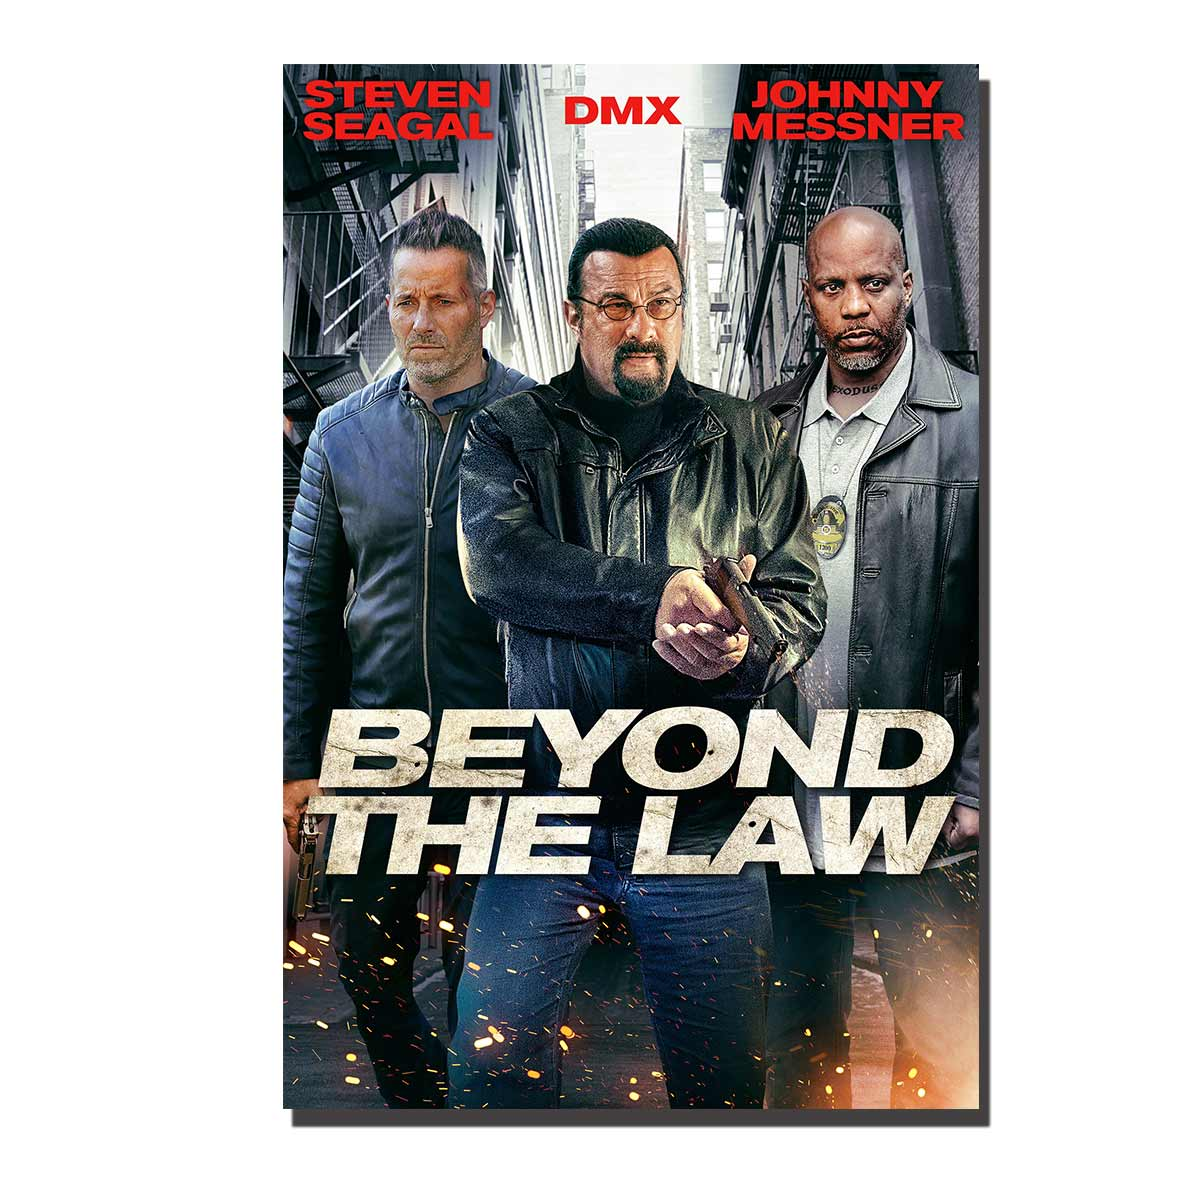 C302 Beyond the Law Movie 2019 Poster Wall Pictures 24x36 12x18 27x40 Print Canvas Gift Decoration image